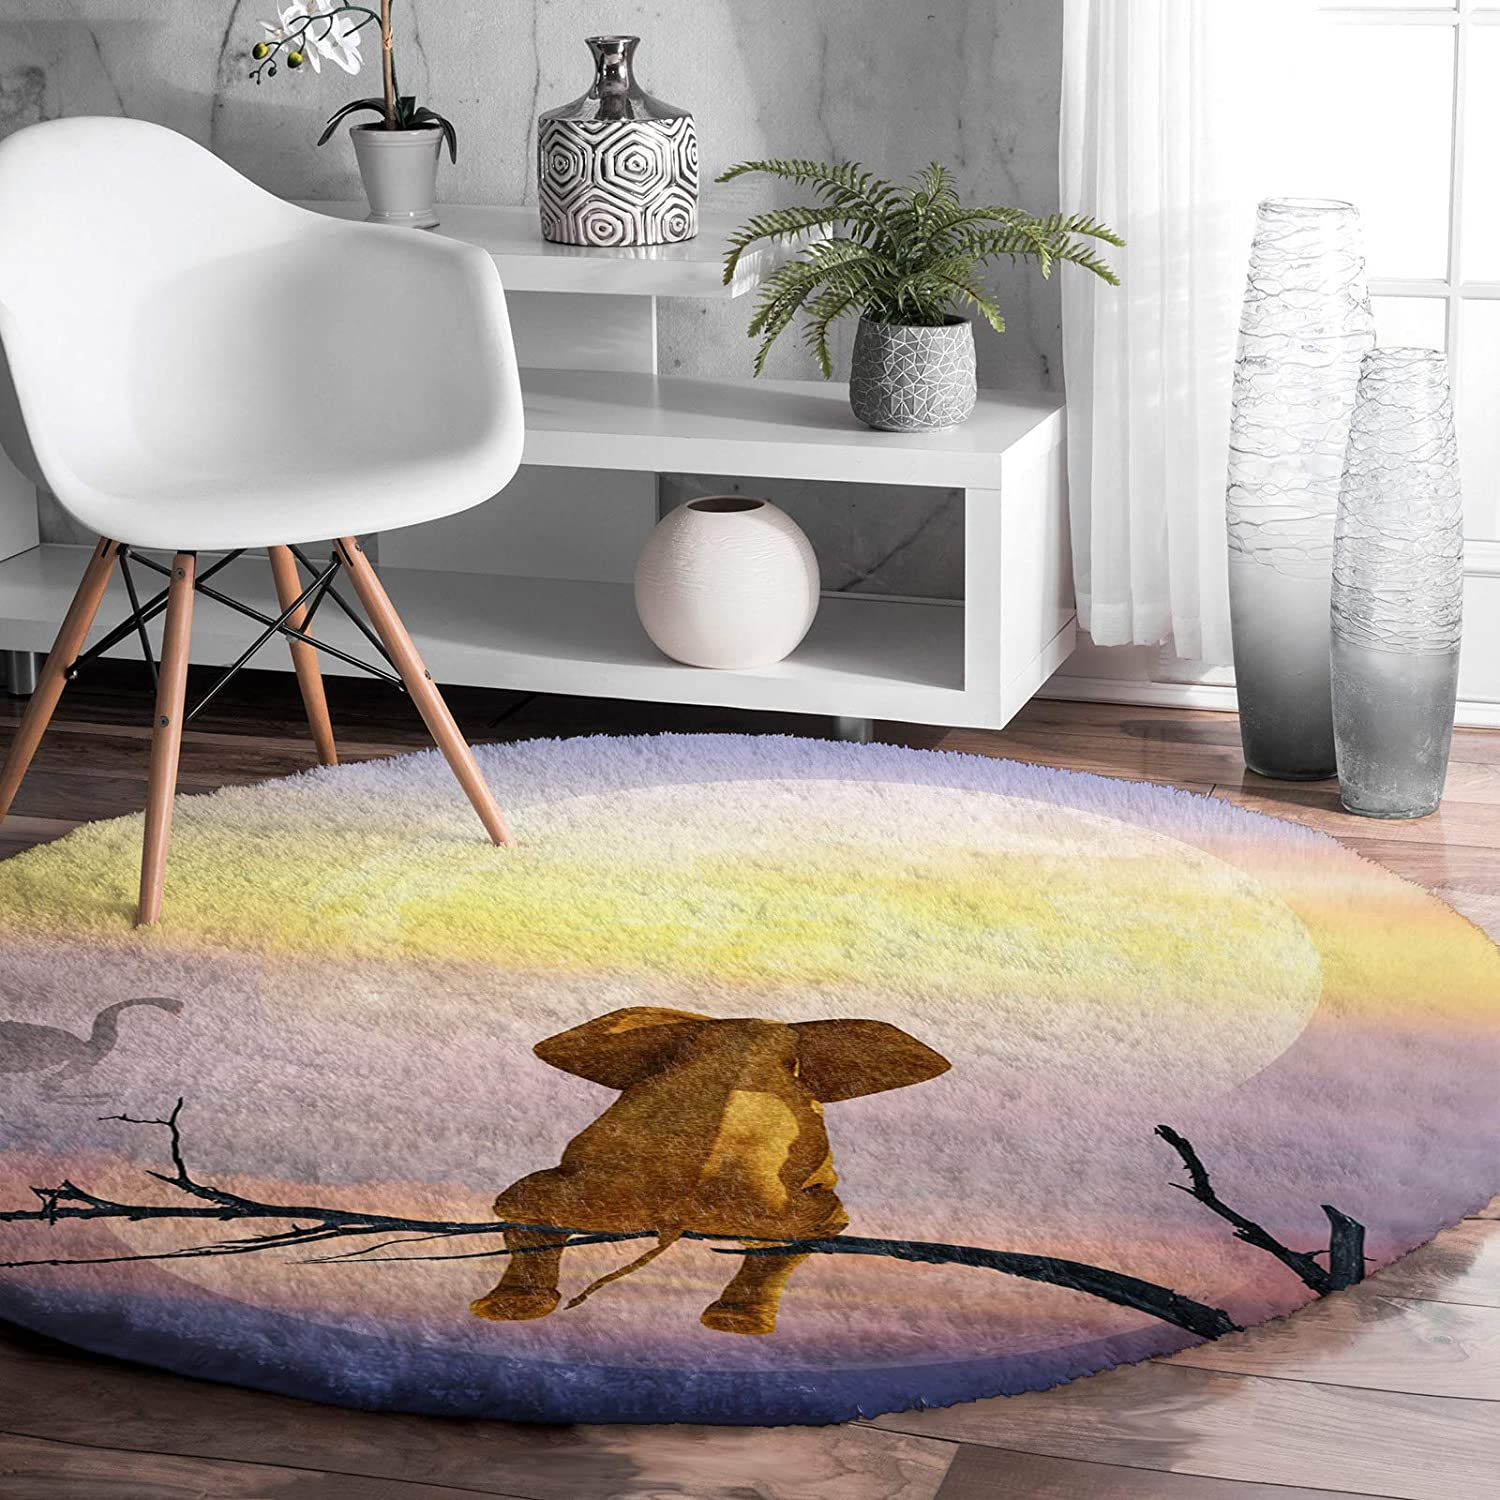 Jacksonville Mall Round Latest item Rug for Bedroom Lonely Elephant Branches Sitting the Wa on